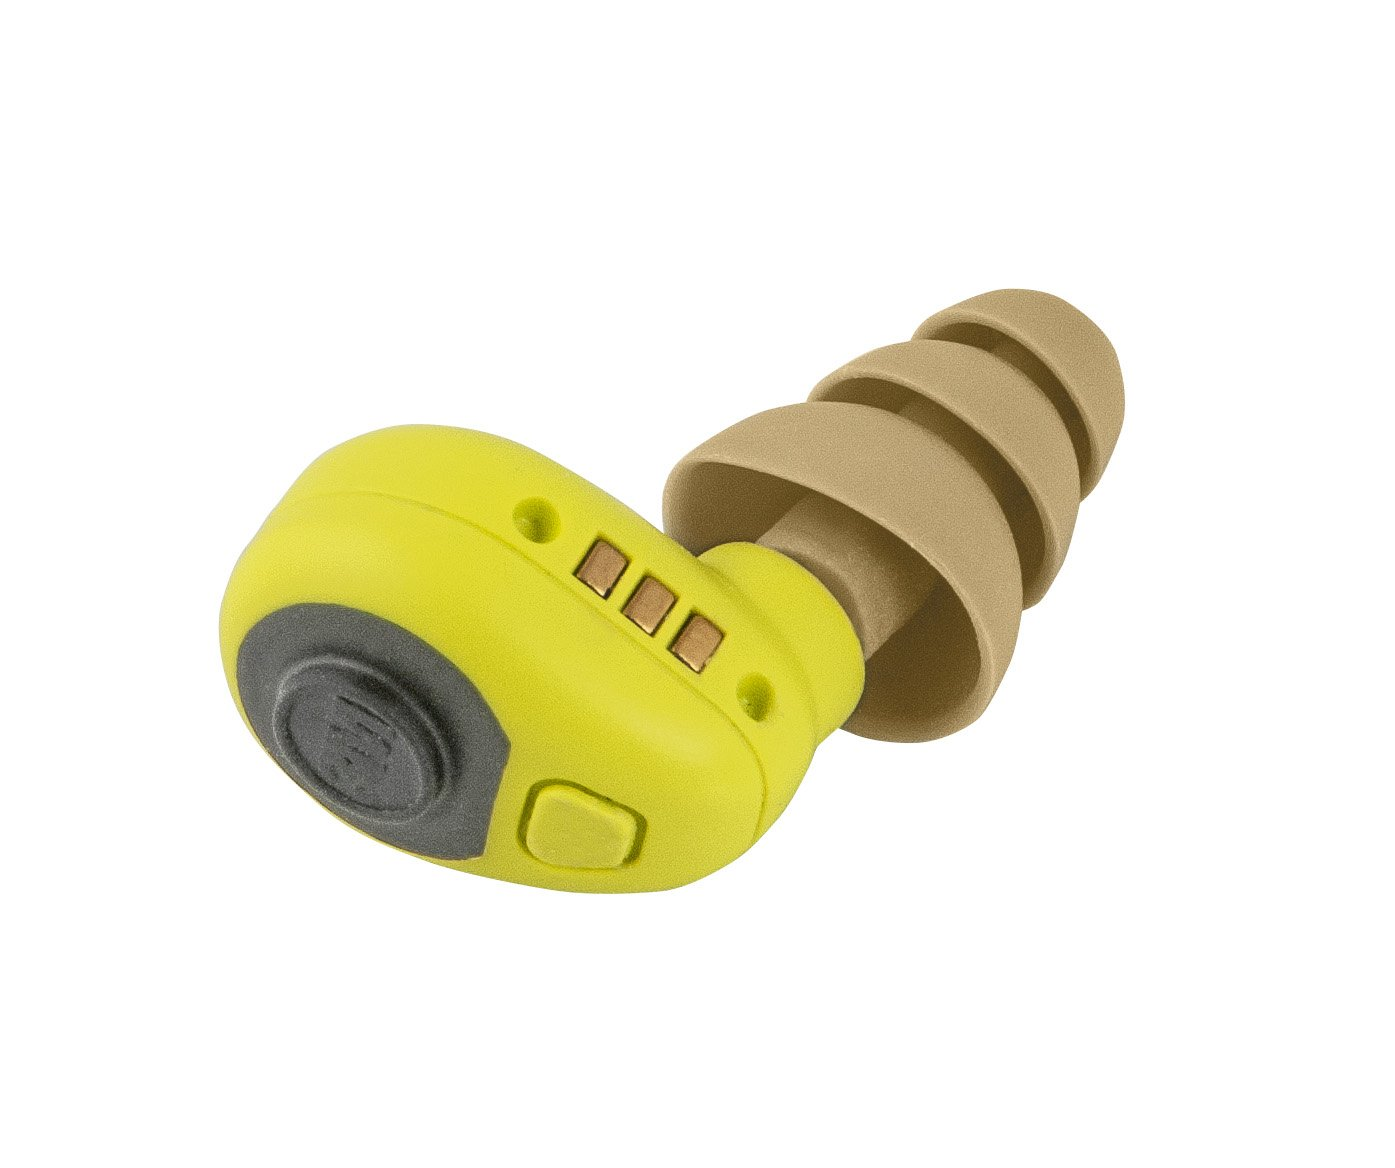 3M PELTOR 93829 Yellow LEP-200 Replacement Earbud